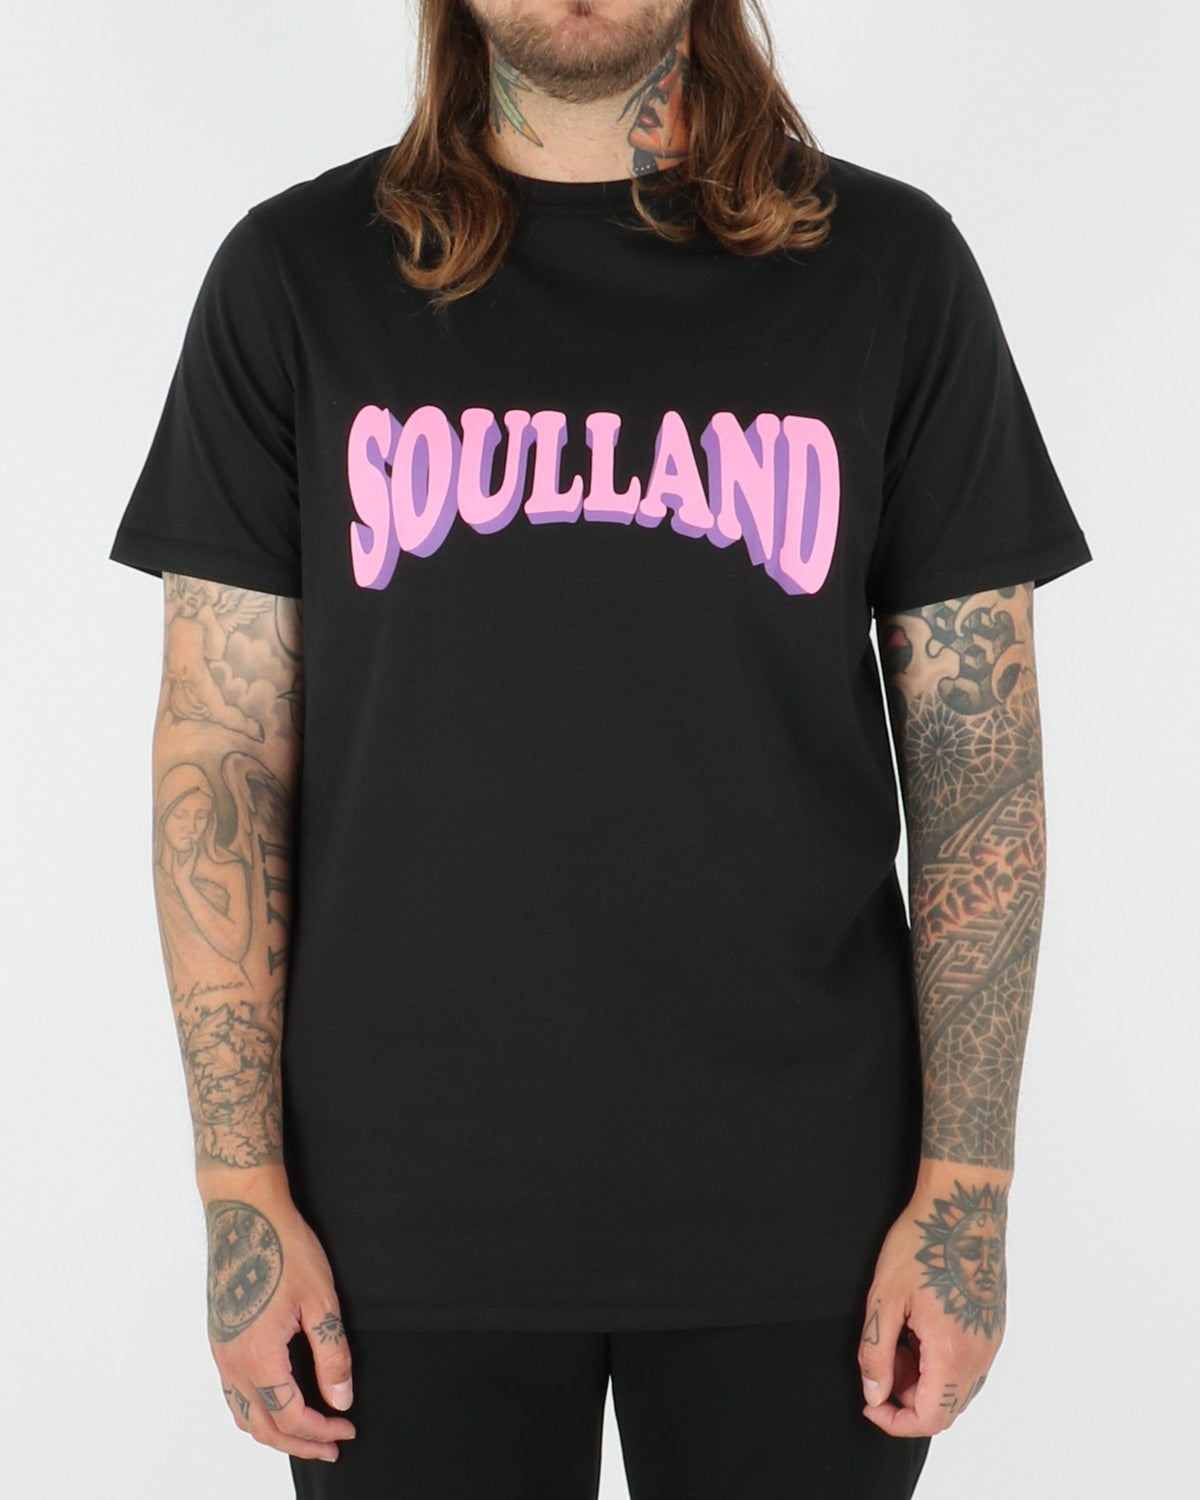 soulland_guido t-shirt_black_1_3